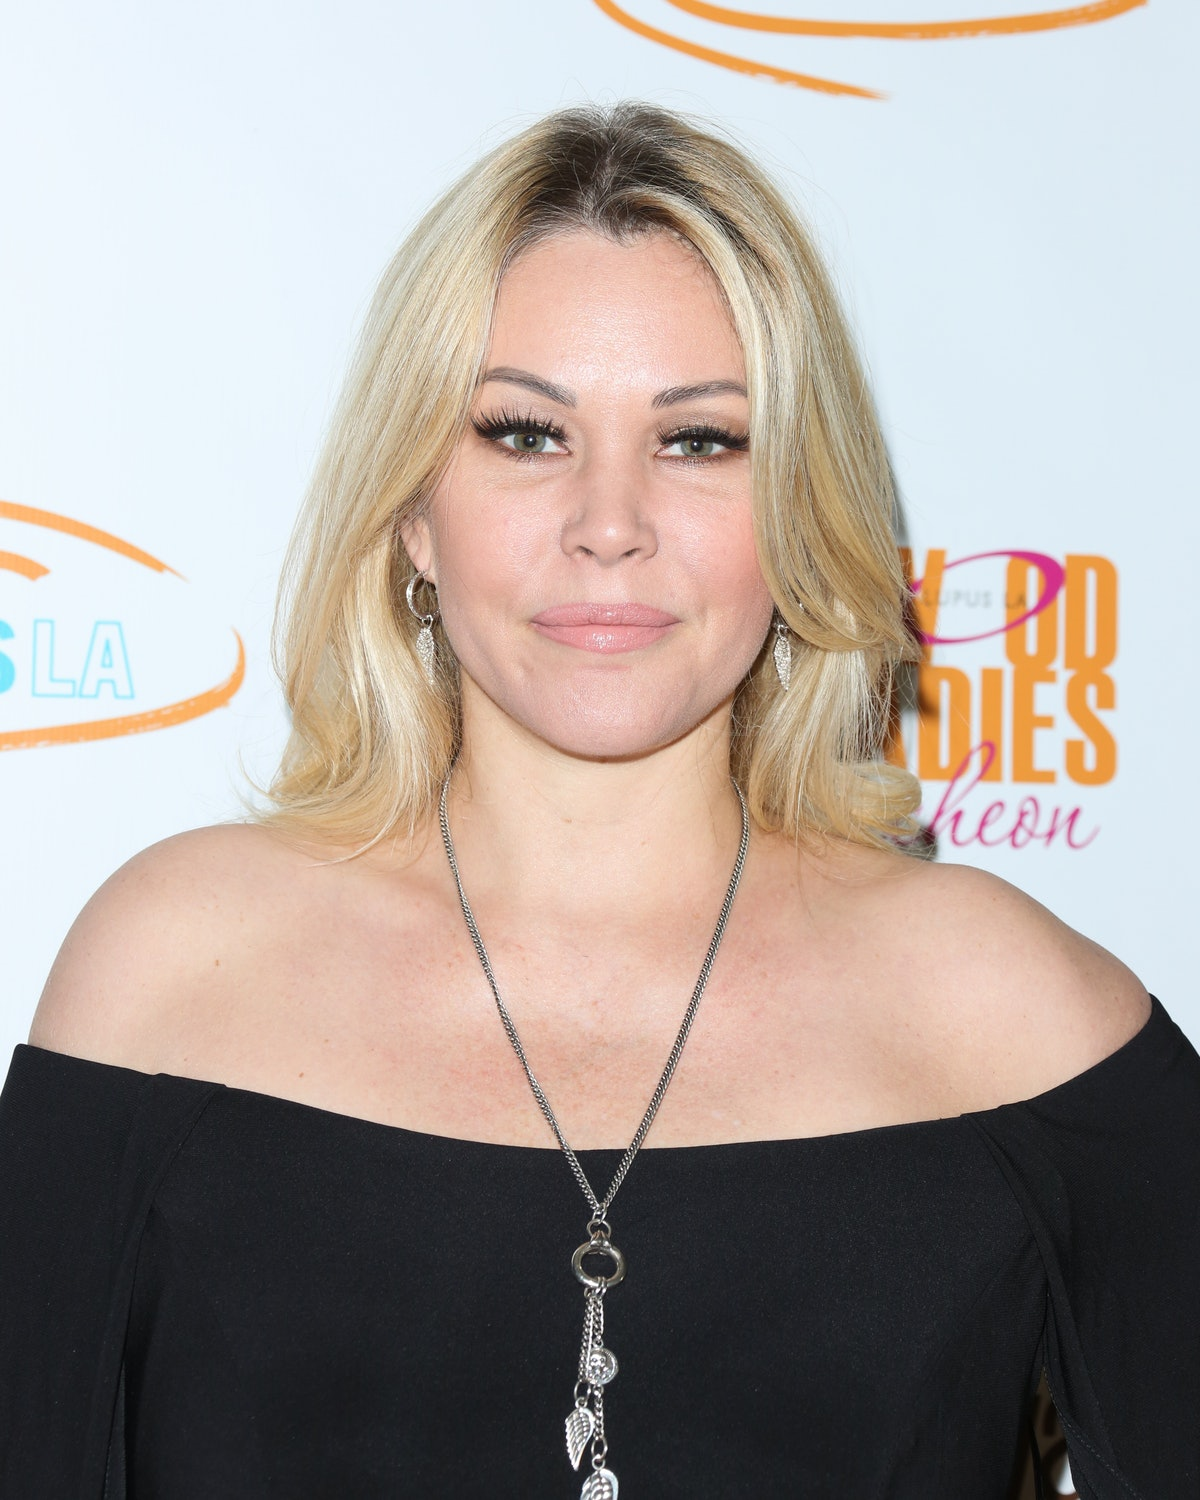 BEVERLY HILLS, CA - NOVEMBER 17:  Reality TV Personality Shanna Moakler attends the Lupus LA 15th annual Hollywood Bag Ladies Lunch at The Beverly Hilton Hotel on November 17, 2017 in Beverly Hills, California.  (Photo by Paul Archuleta/FilmMagic)